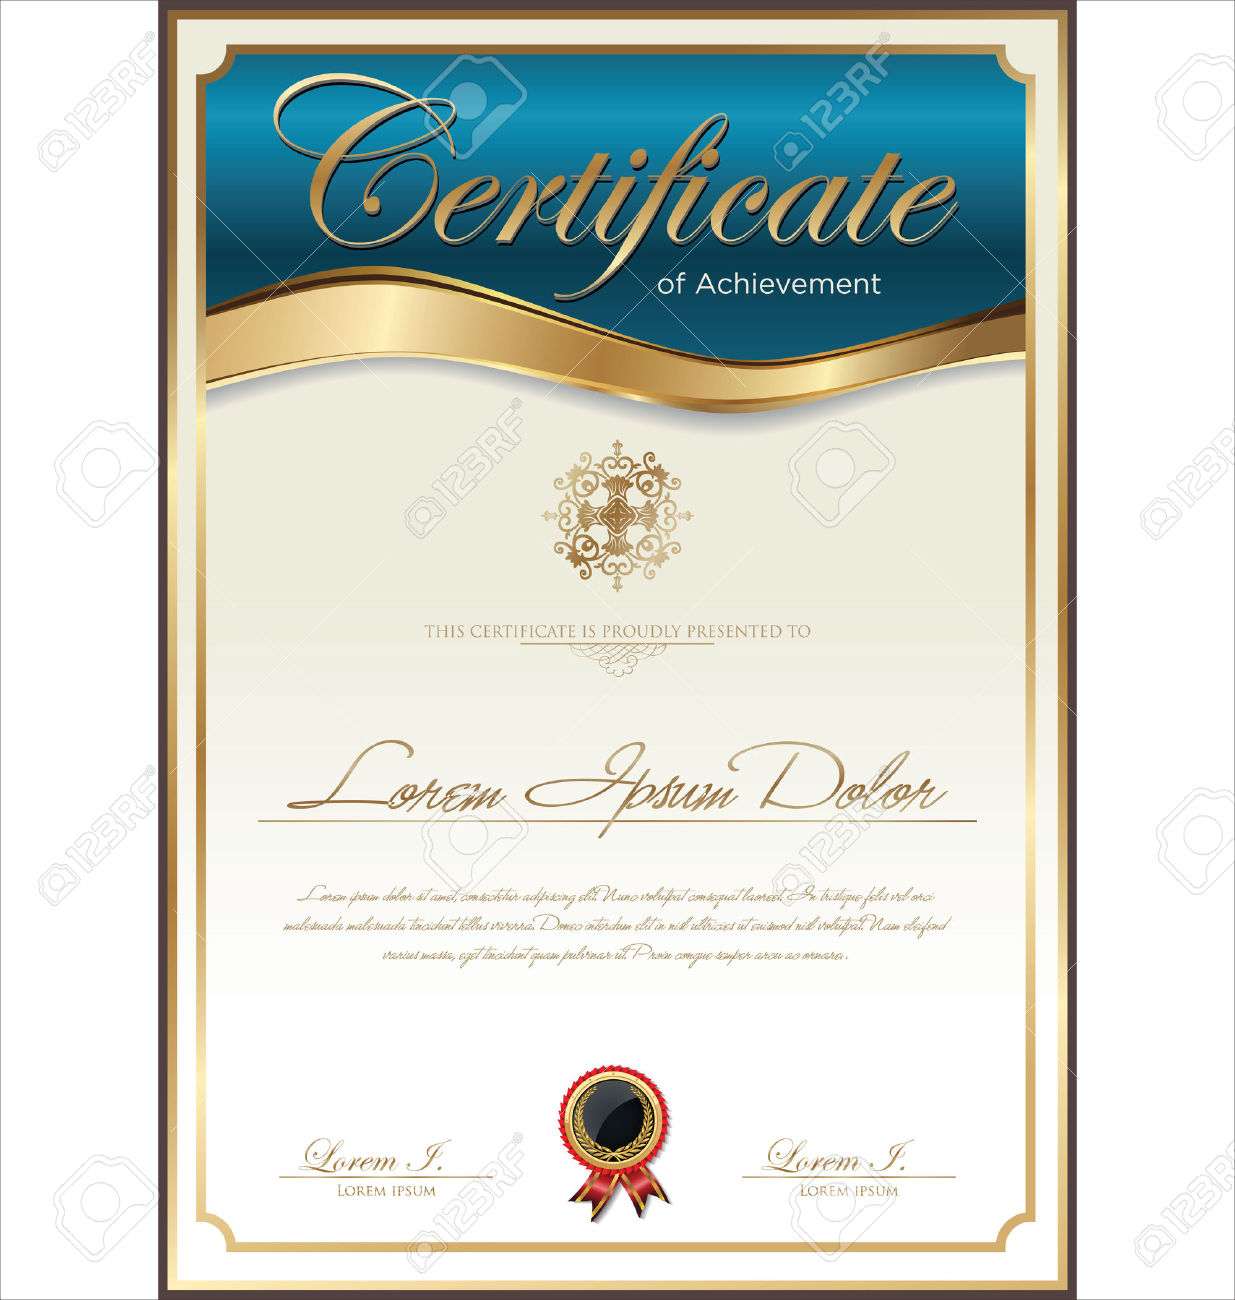 Certificate templates rich image and wallpaper for Certificate of organization template